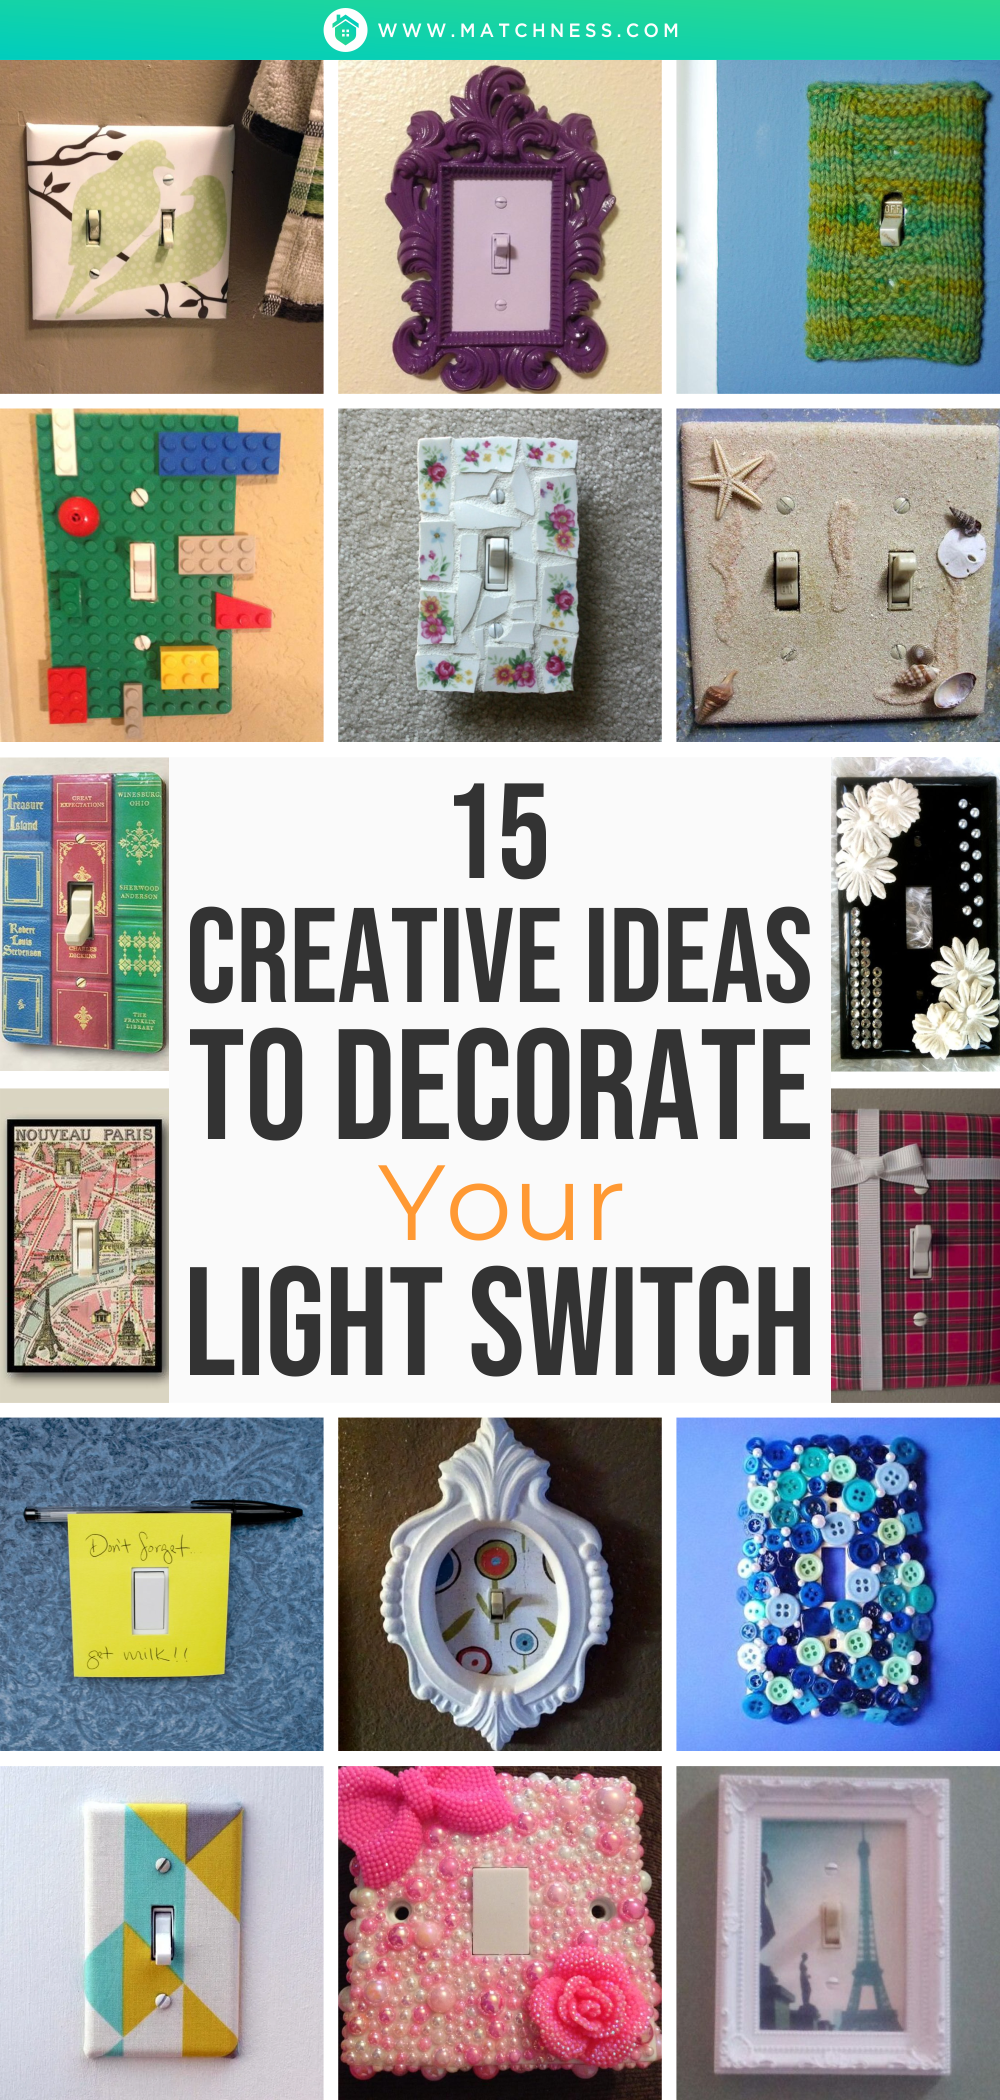 15-creative-ideas-to-decorate-your-light-switch1